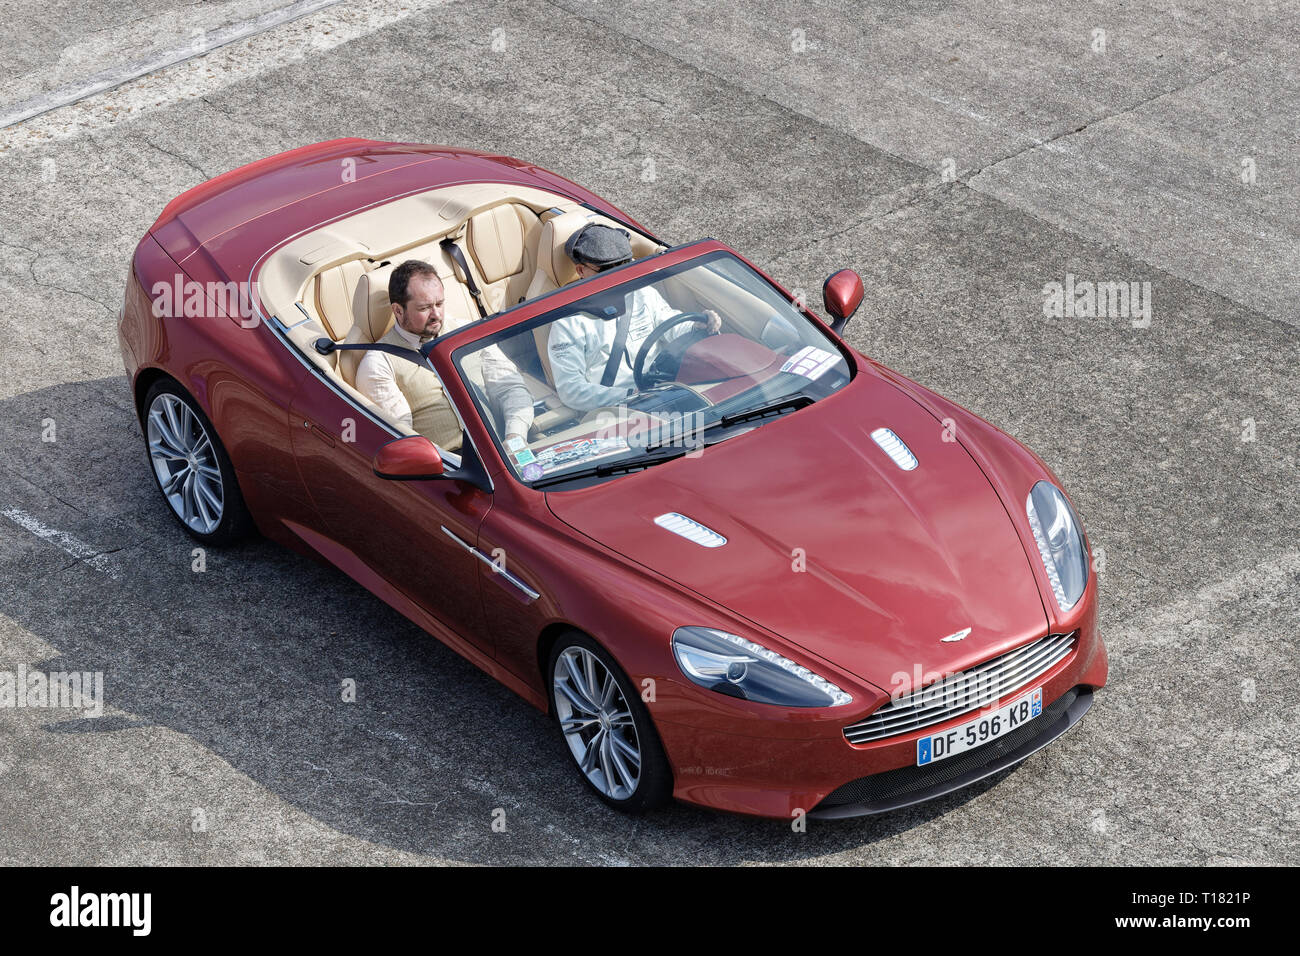 Linas Montlhery France 23rd Mar 2019 Aston Martin Db9 Volante God Save The Car And The